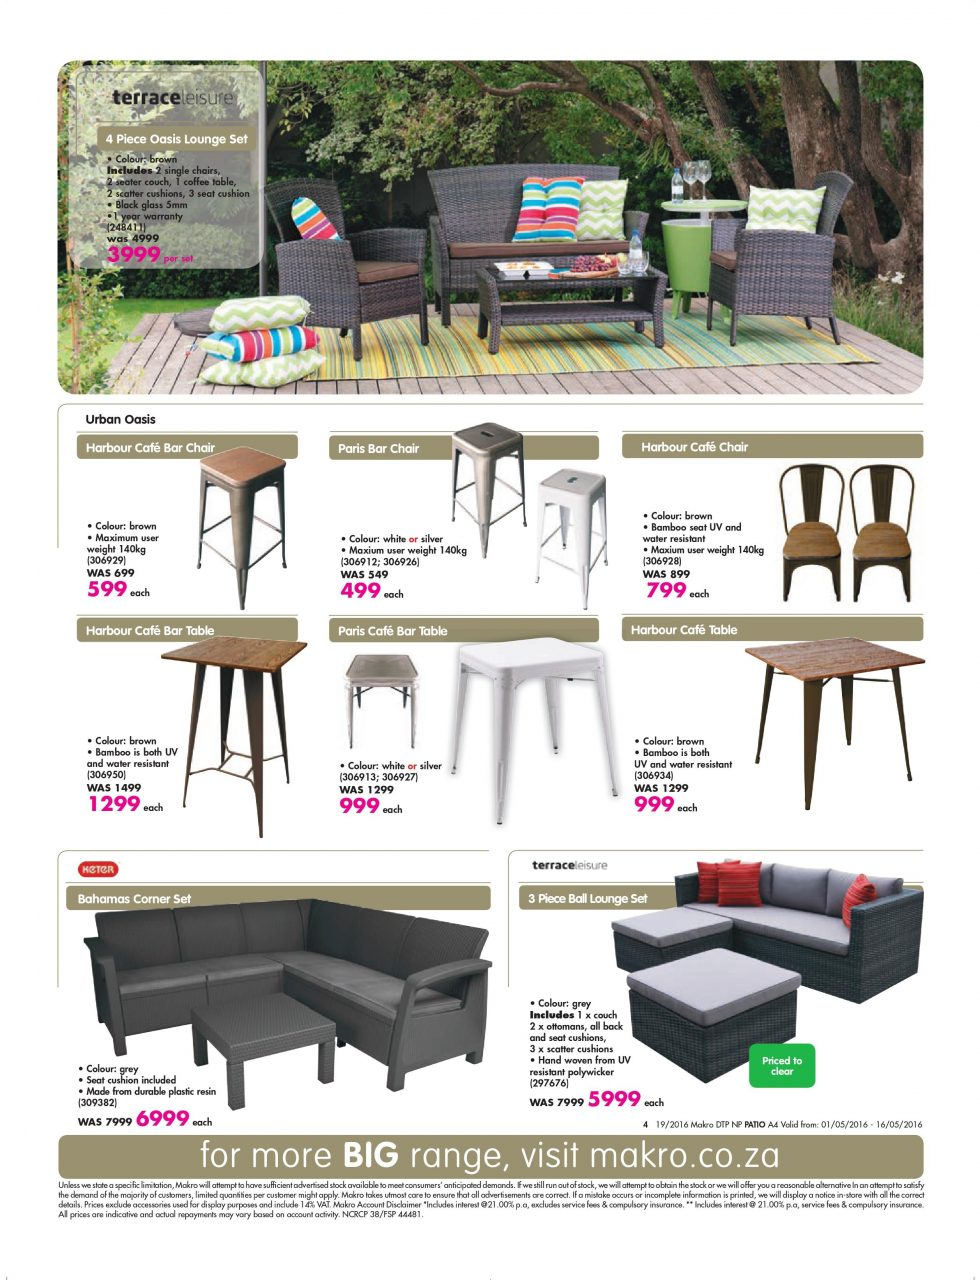 43 Patio Catalog Pages From 2015 Patio Catalog 2 Page 03 Sneade039